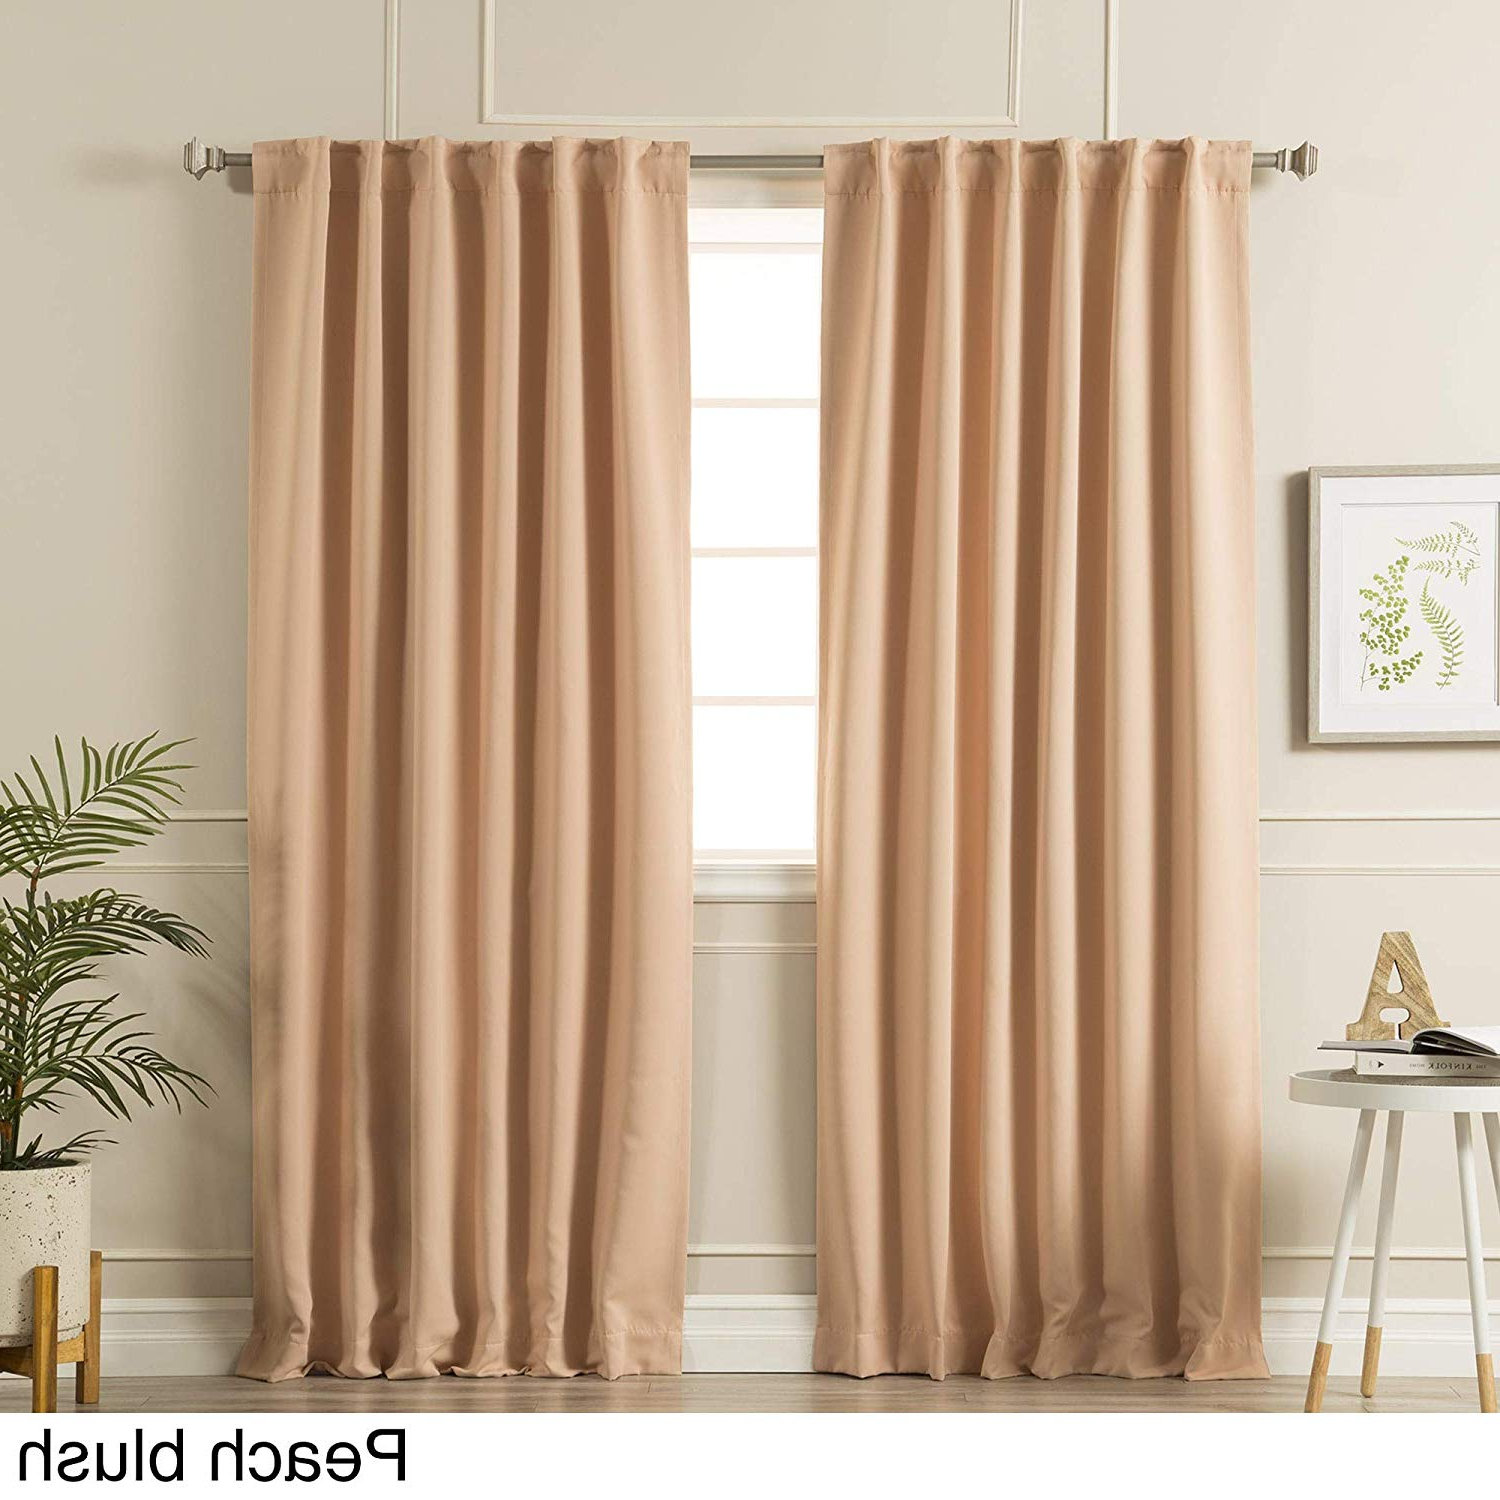 Preferred Solid Insulated Thermal Blackout Curtain Panel Pairs In Amazon: Aurora Home Solid Insulated Thermal Blackout (View 4 of 20)